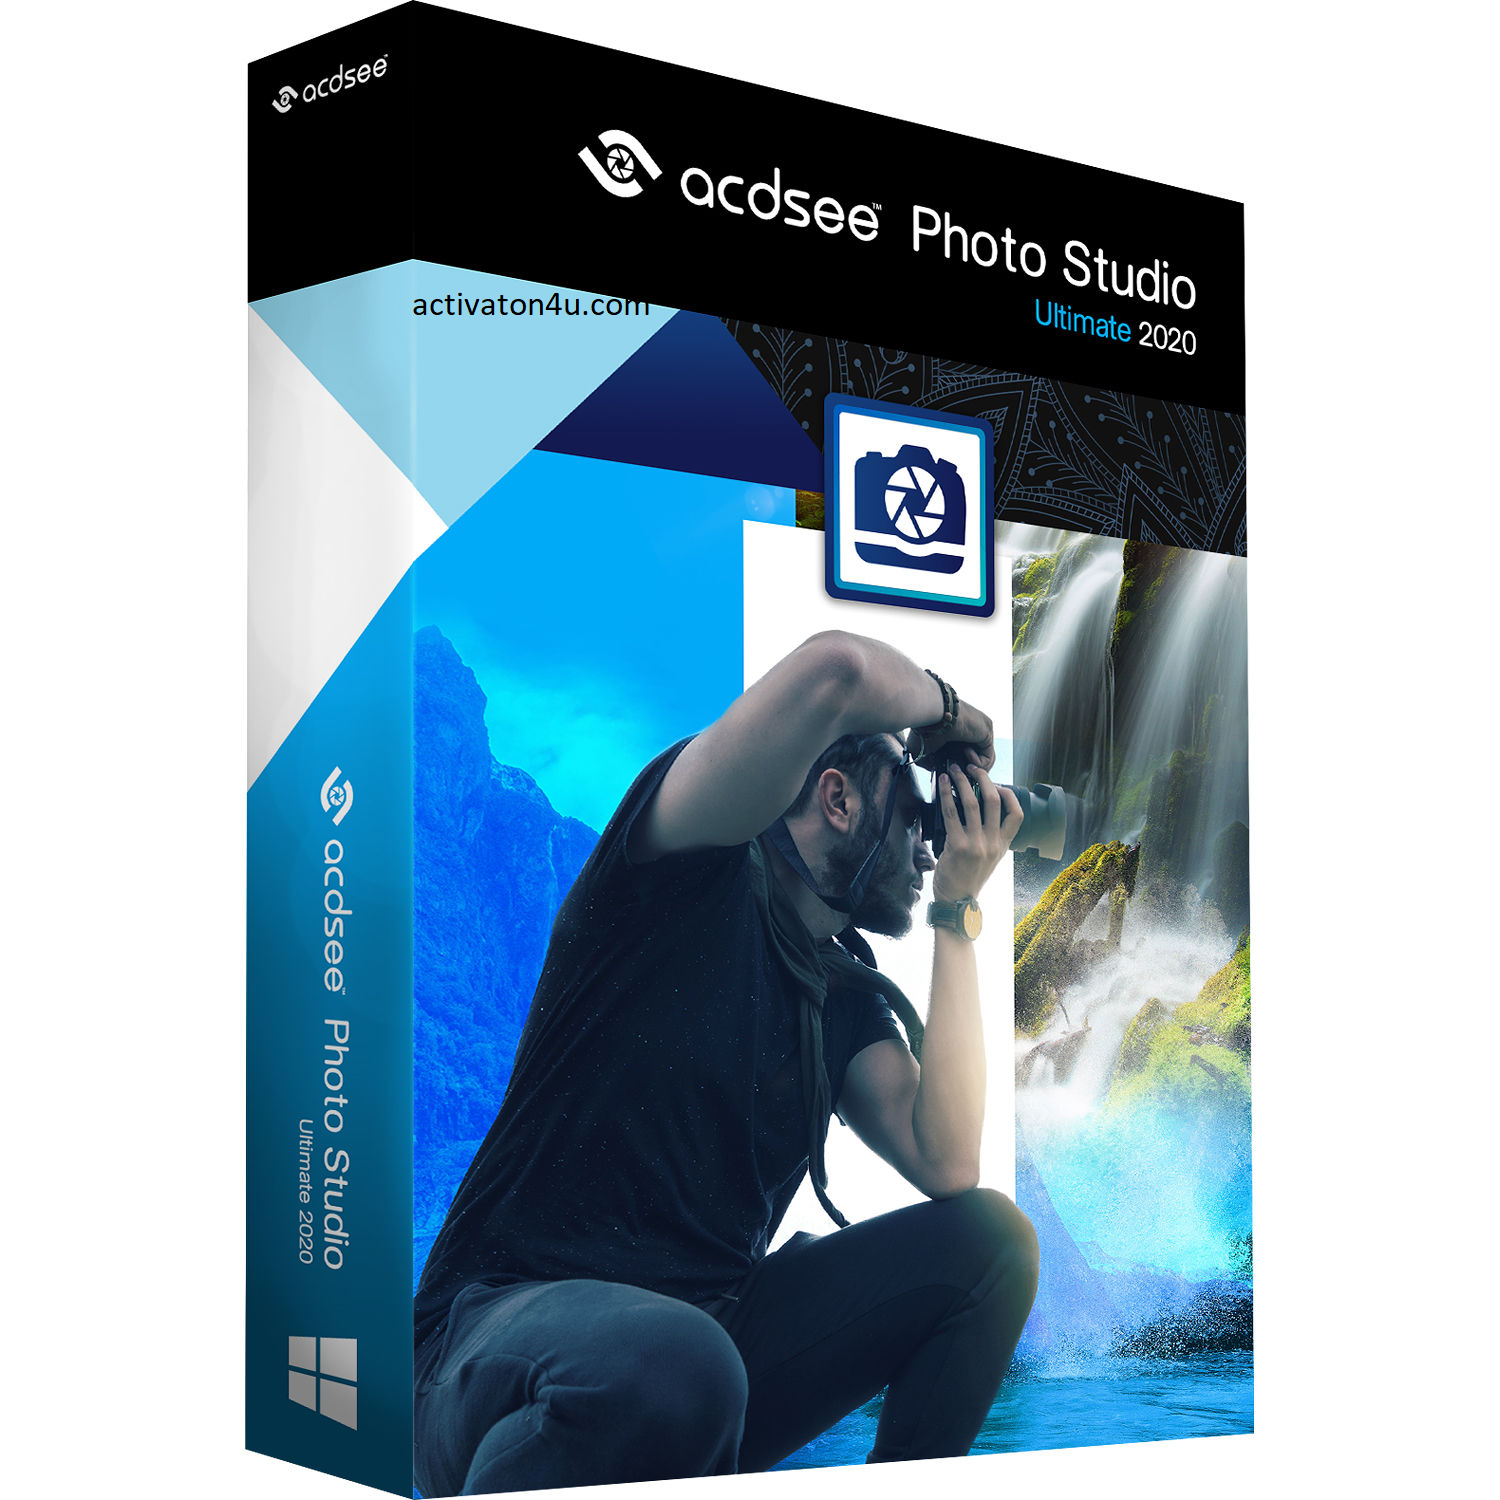 ACDSee Photo Studio Ultimate 2020 13.0.2 Crack Free Download